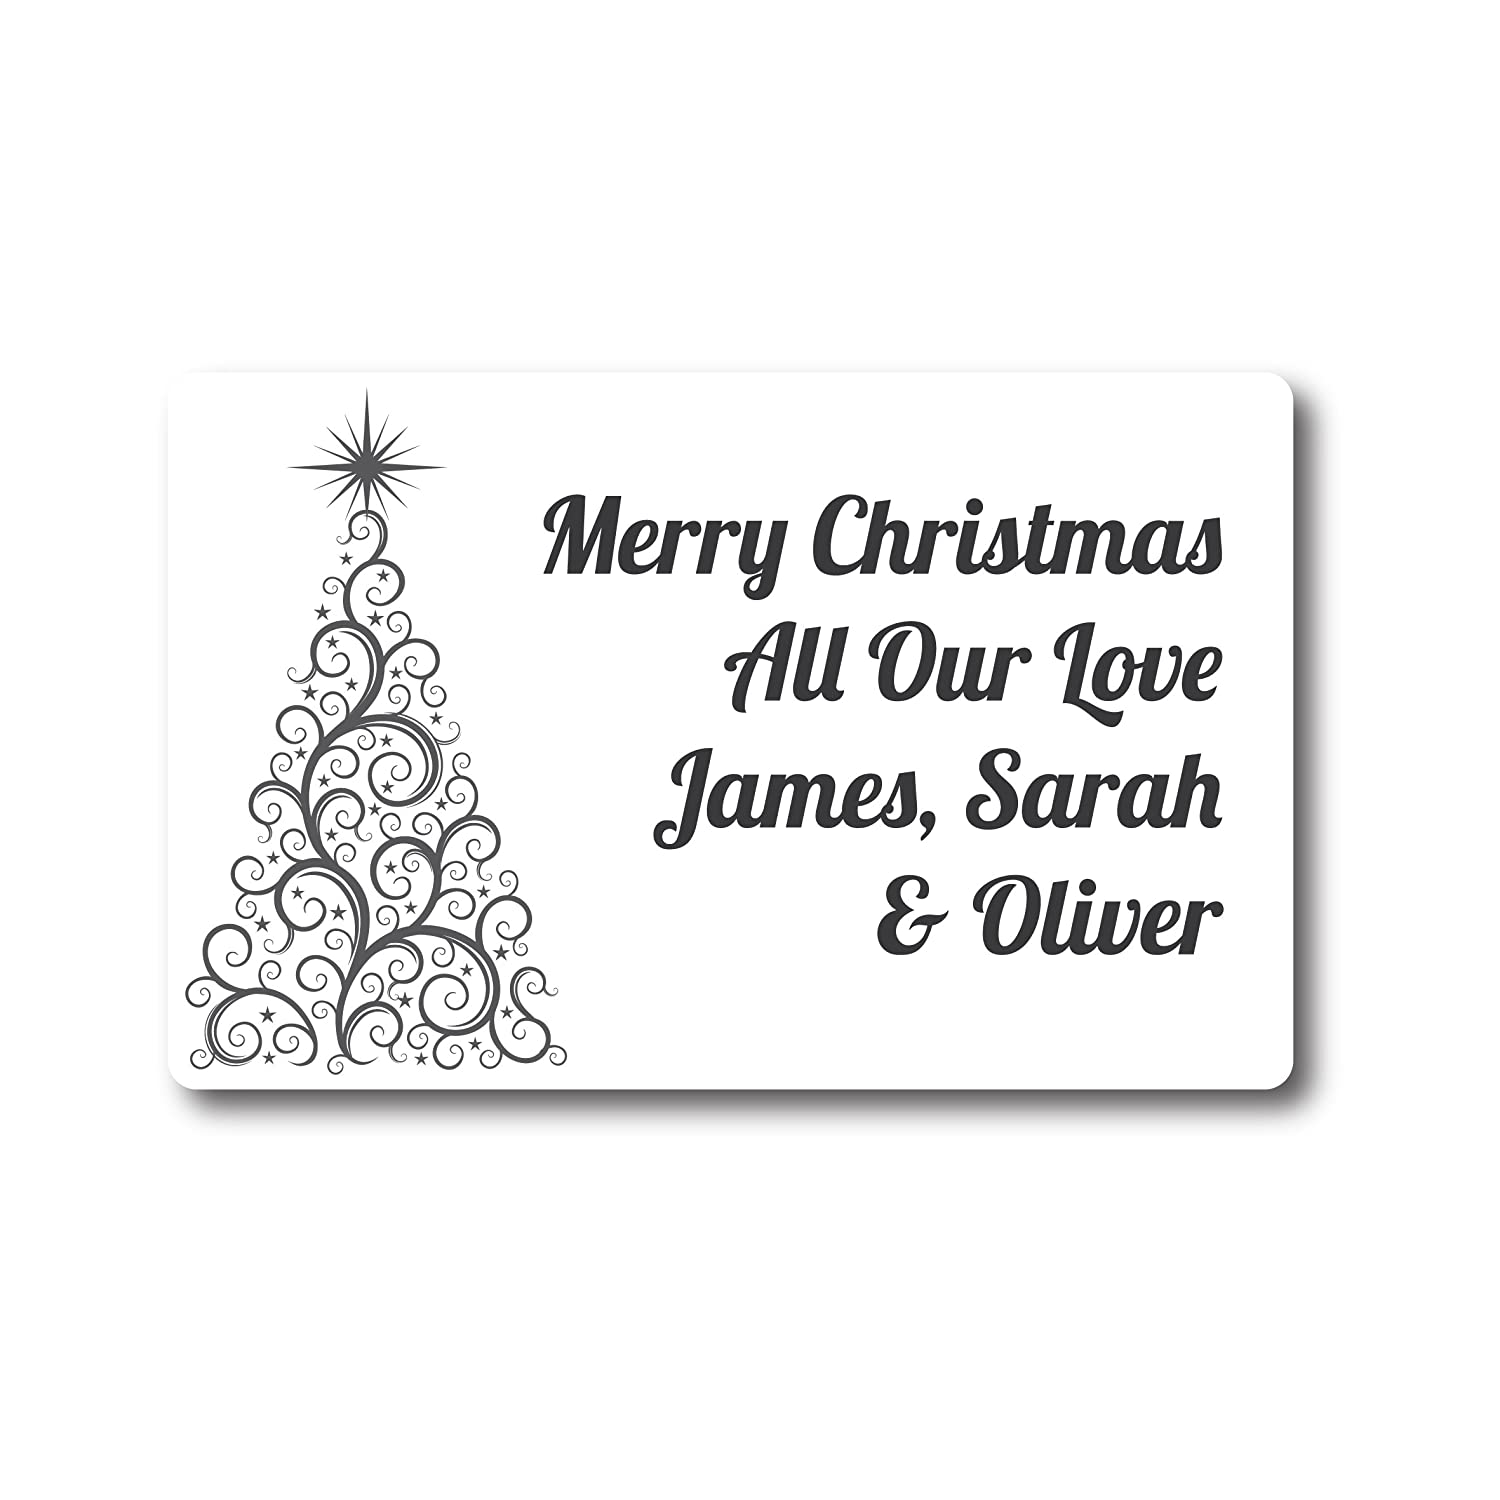 50 x 4cm PERSONALISED Swirly Christmas Tree Stickers//Labels Cards Presents Gifts Xmas